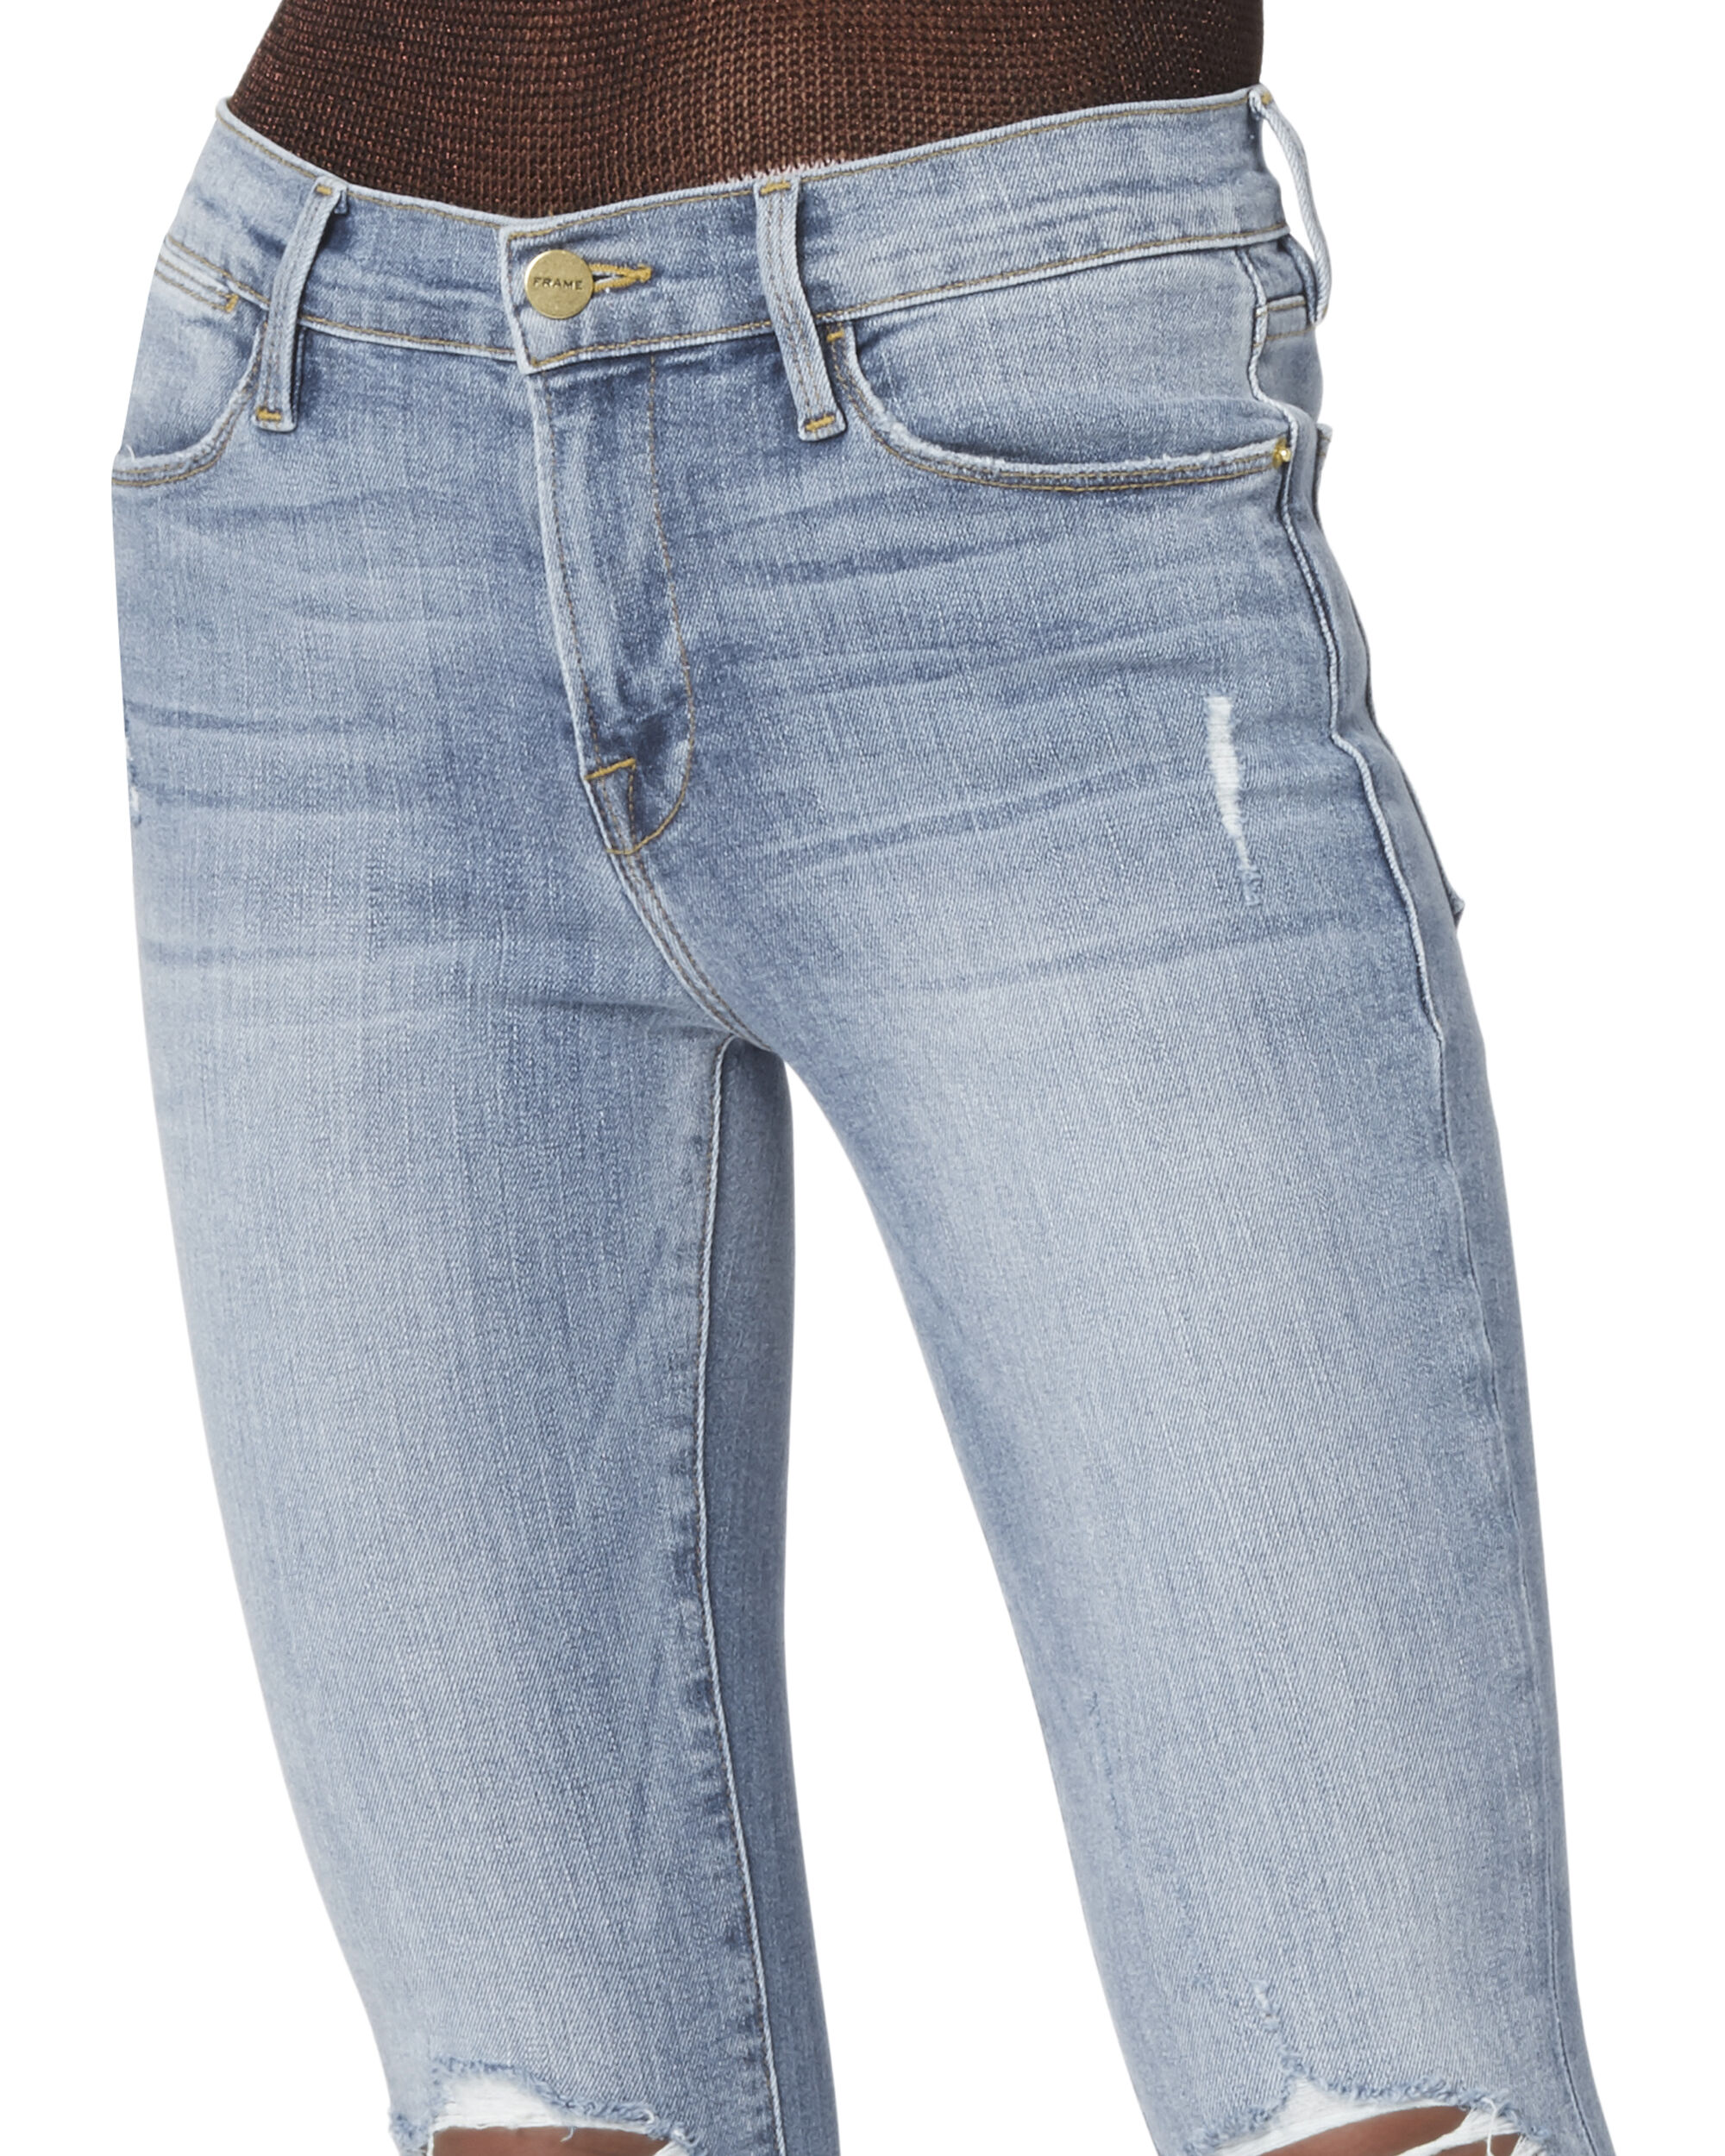 Le High Distressed Crop Skinny Jeans, DENIM, hi-res